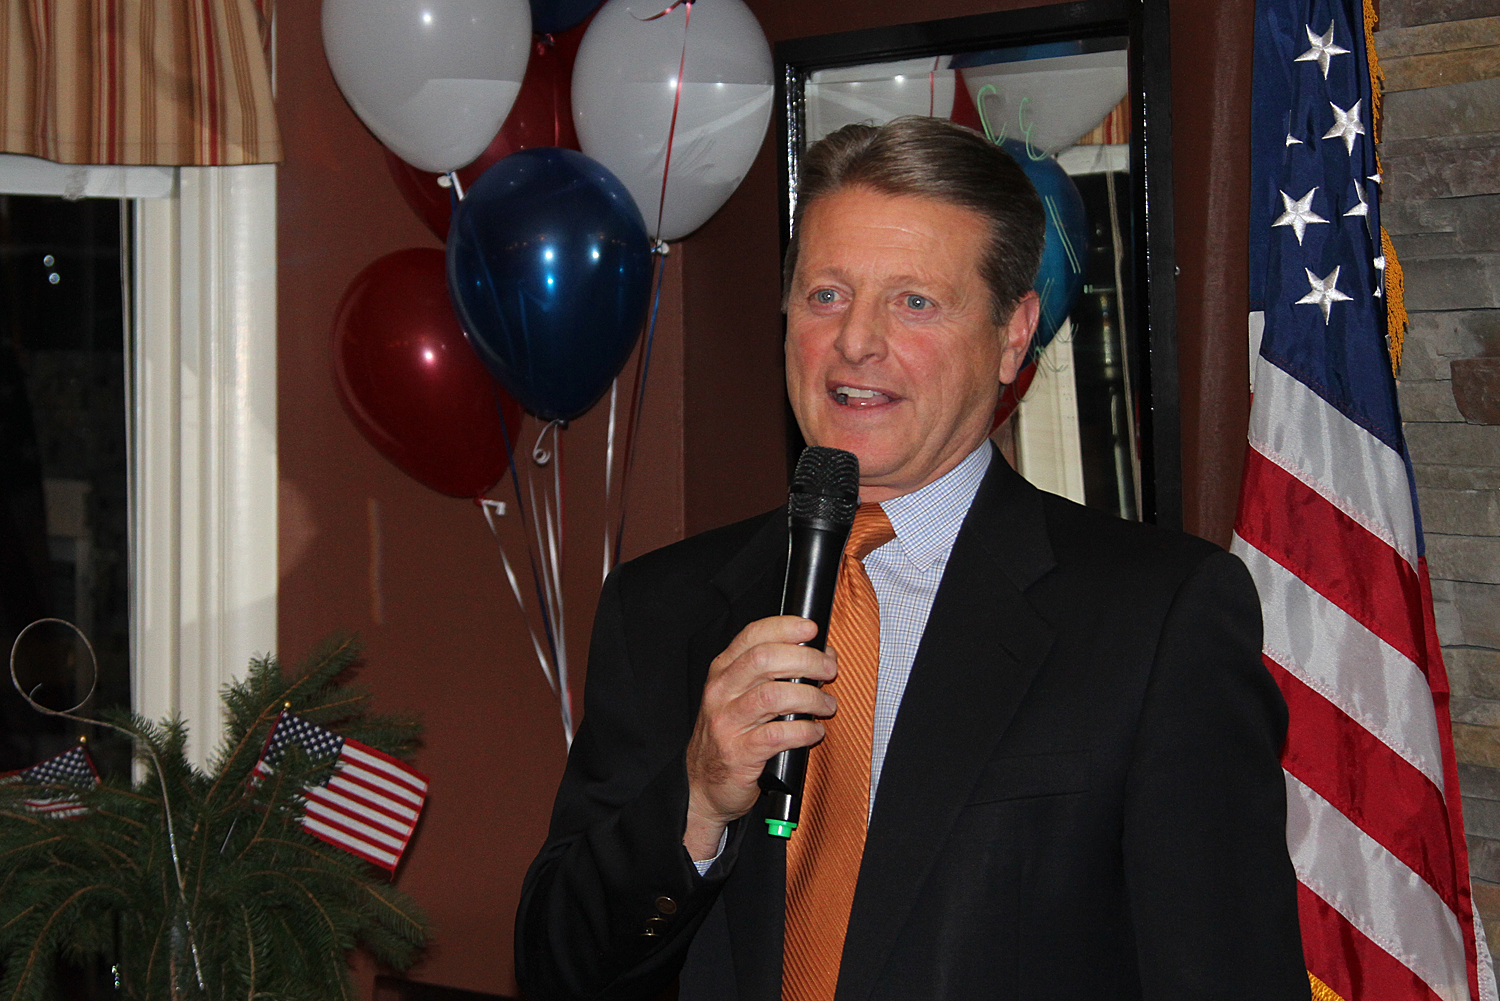 Senator Gallivan Fighting for Western New York Ideals